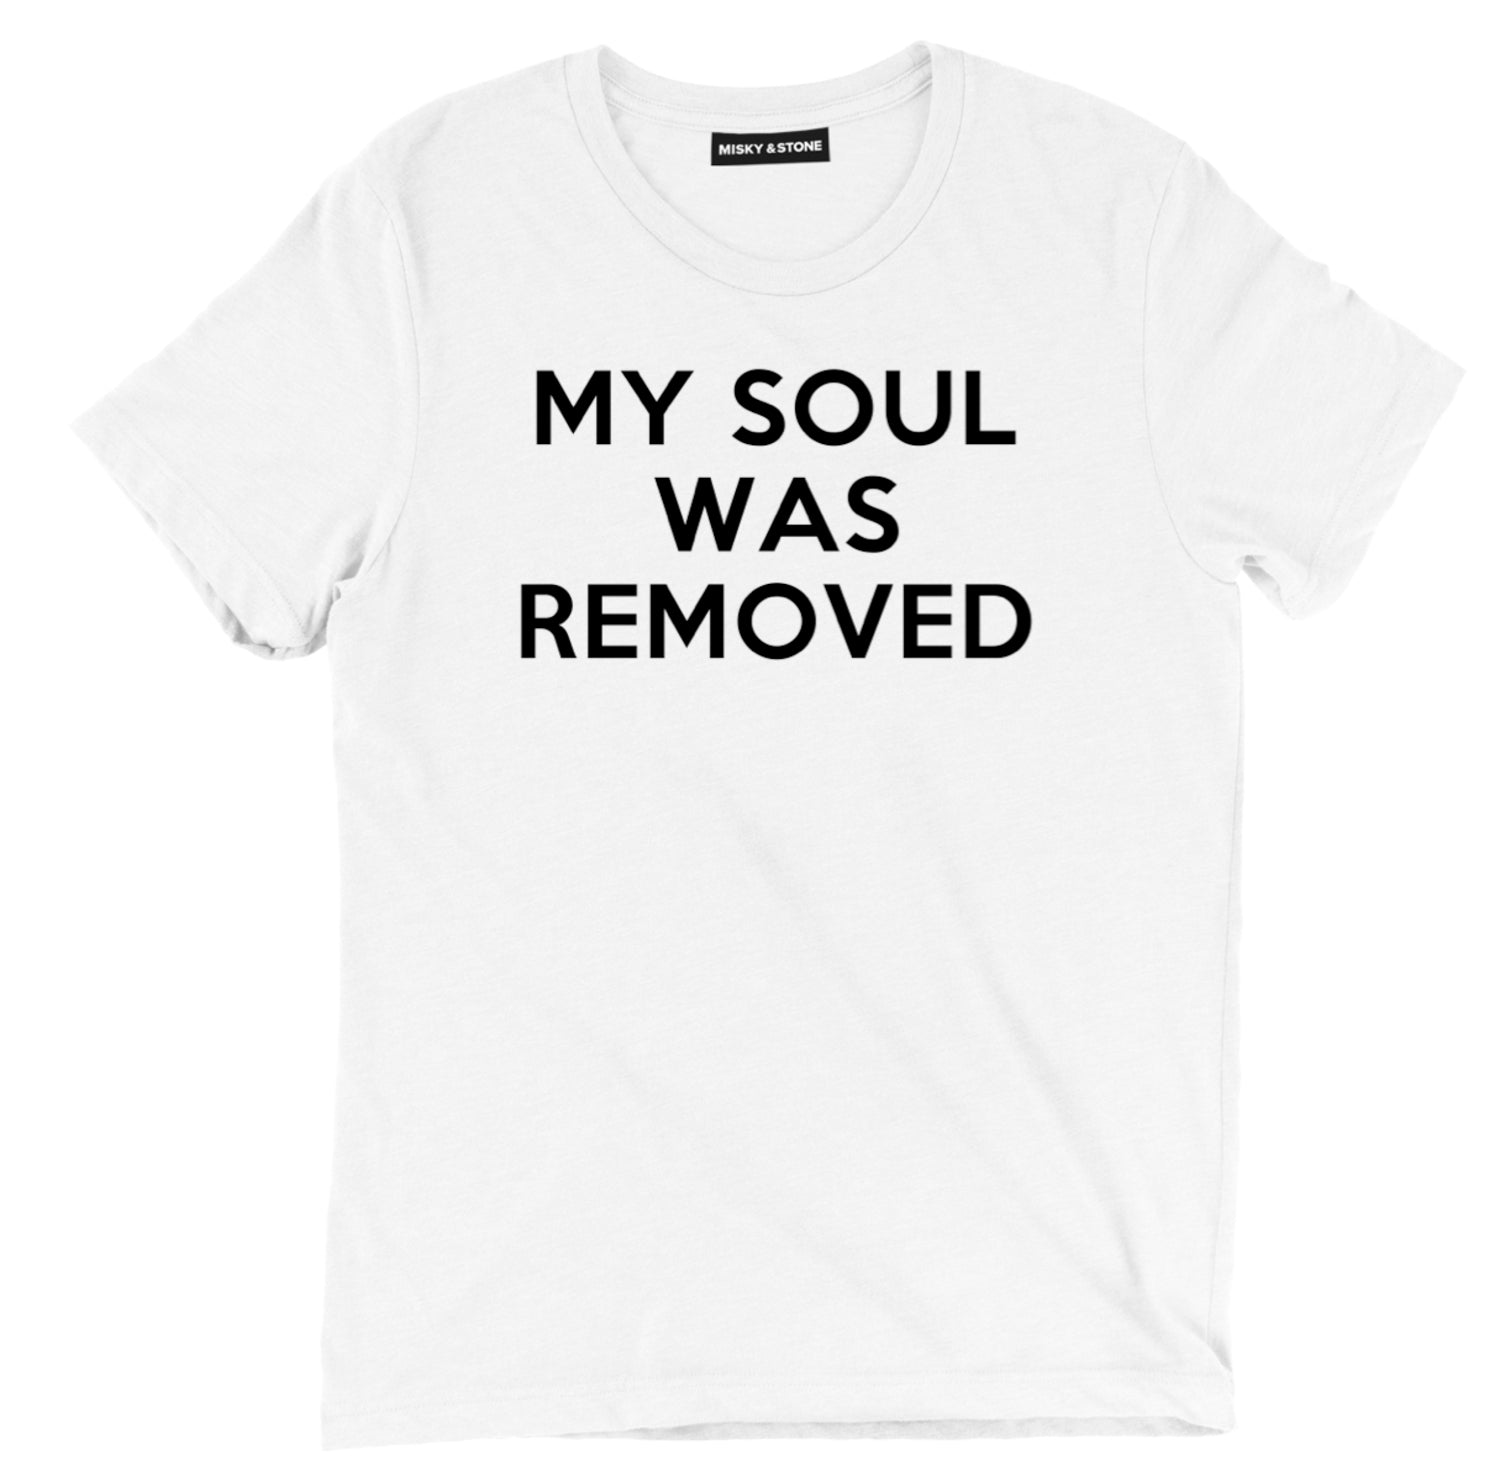 My Soul Was Removed Unisex Tee Shirt